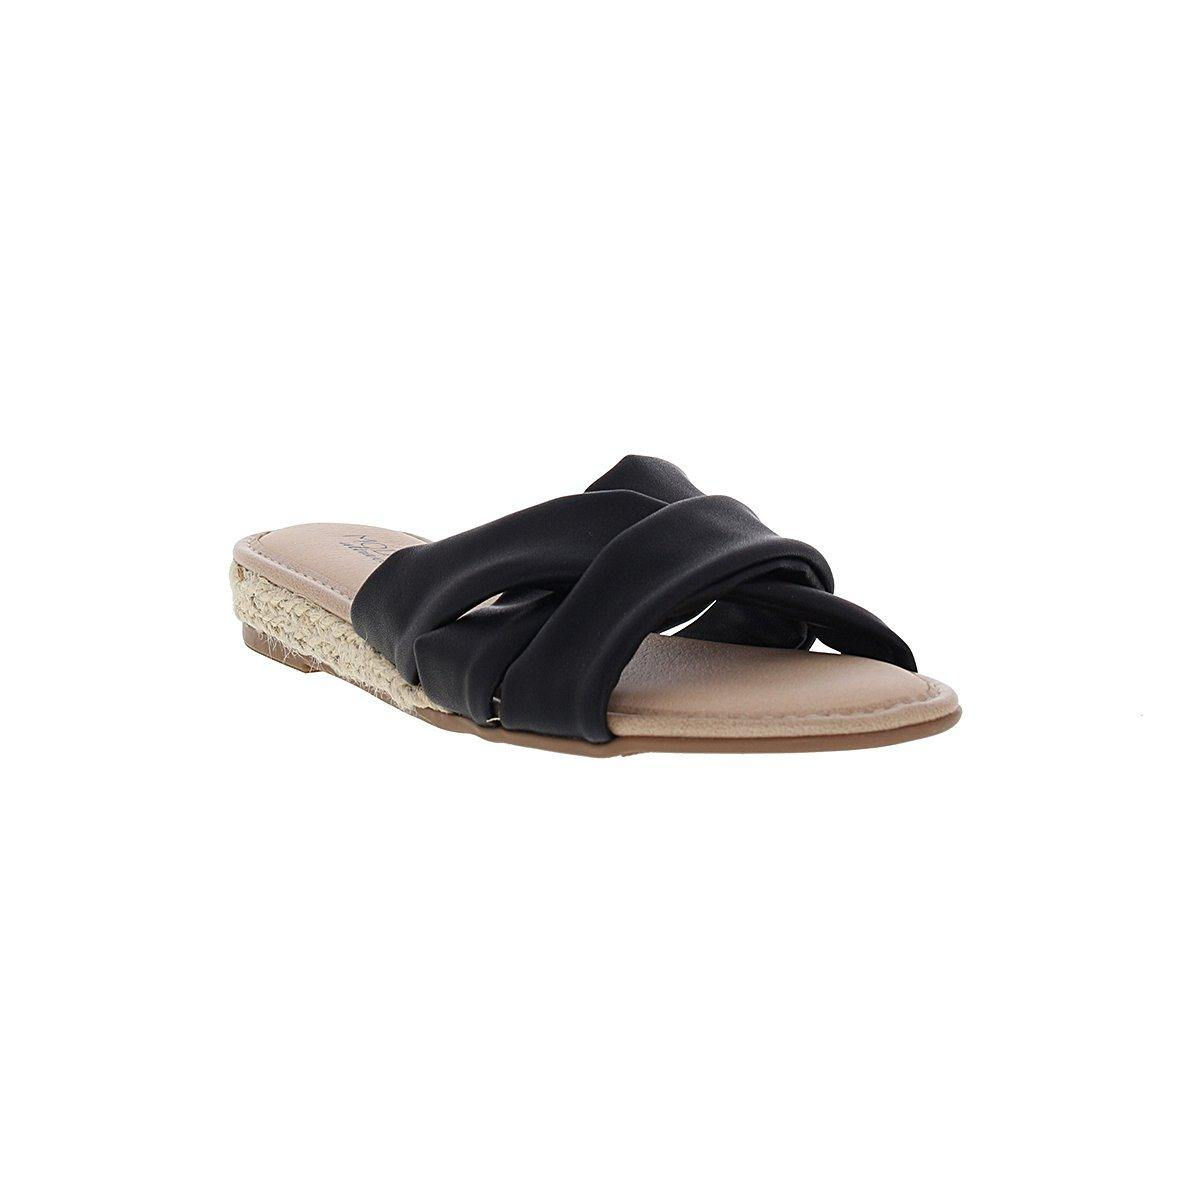 Modare 7138-101 Slip-On Sandal in Black Napa